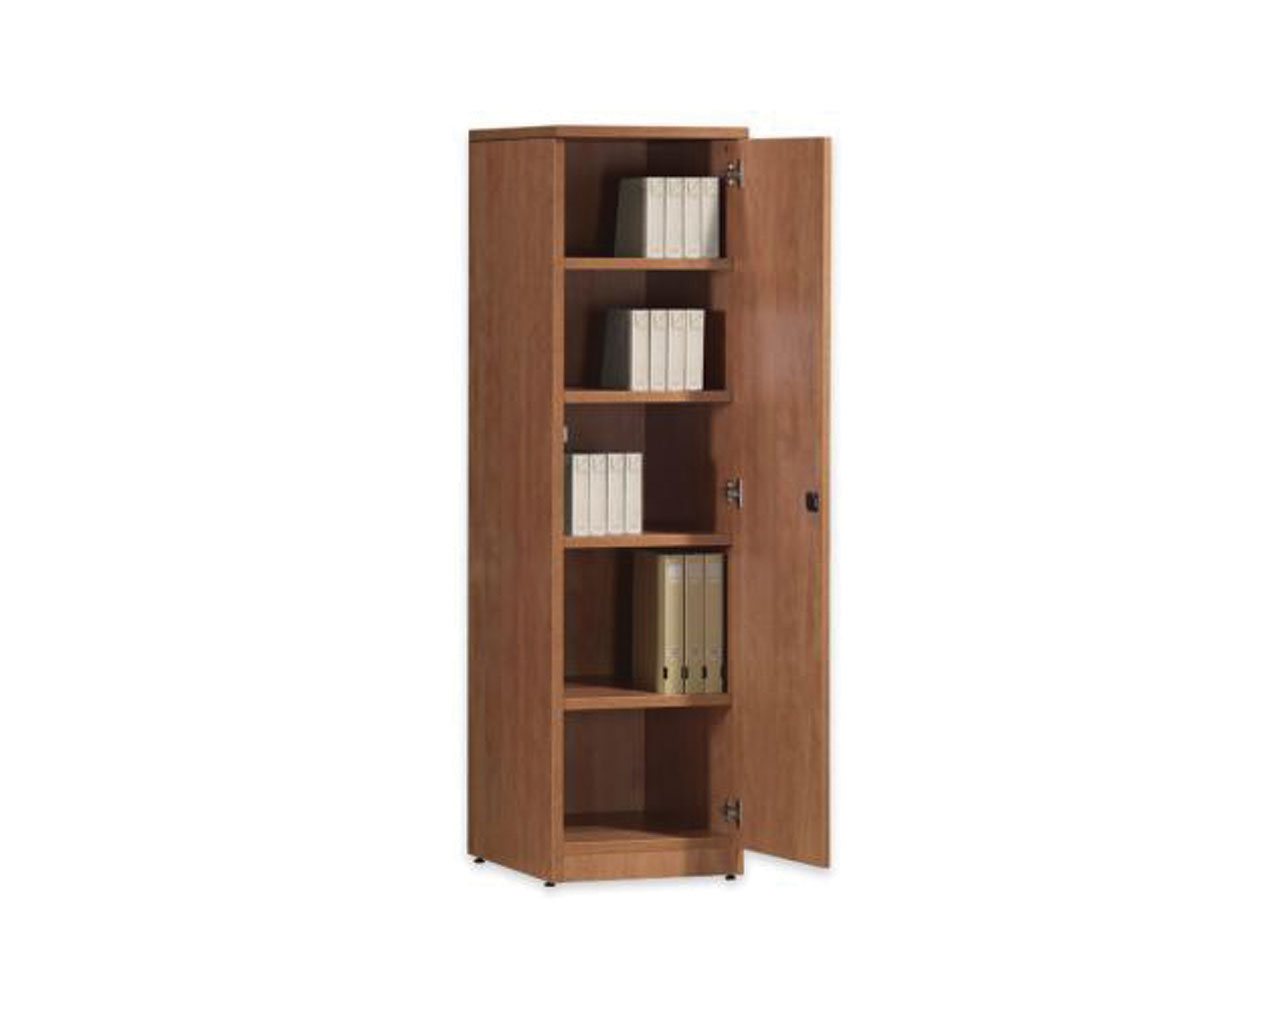 Wardrobe Storage Cabinet Classic 65 Quoth Wardrobe Storage Cabinet